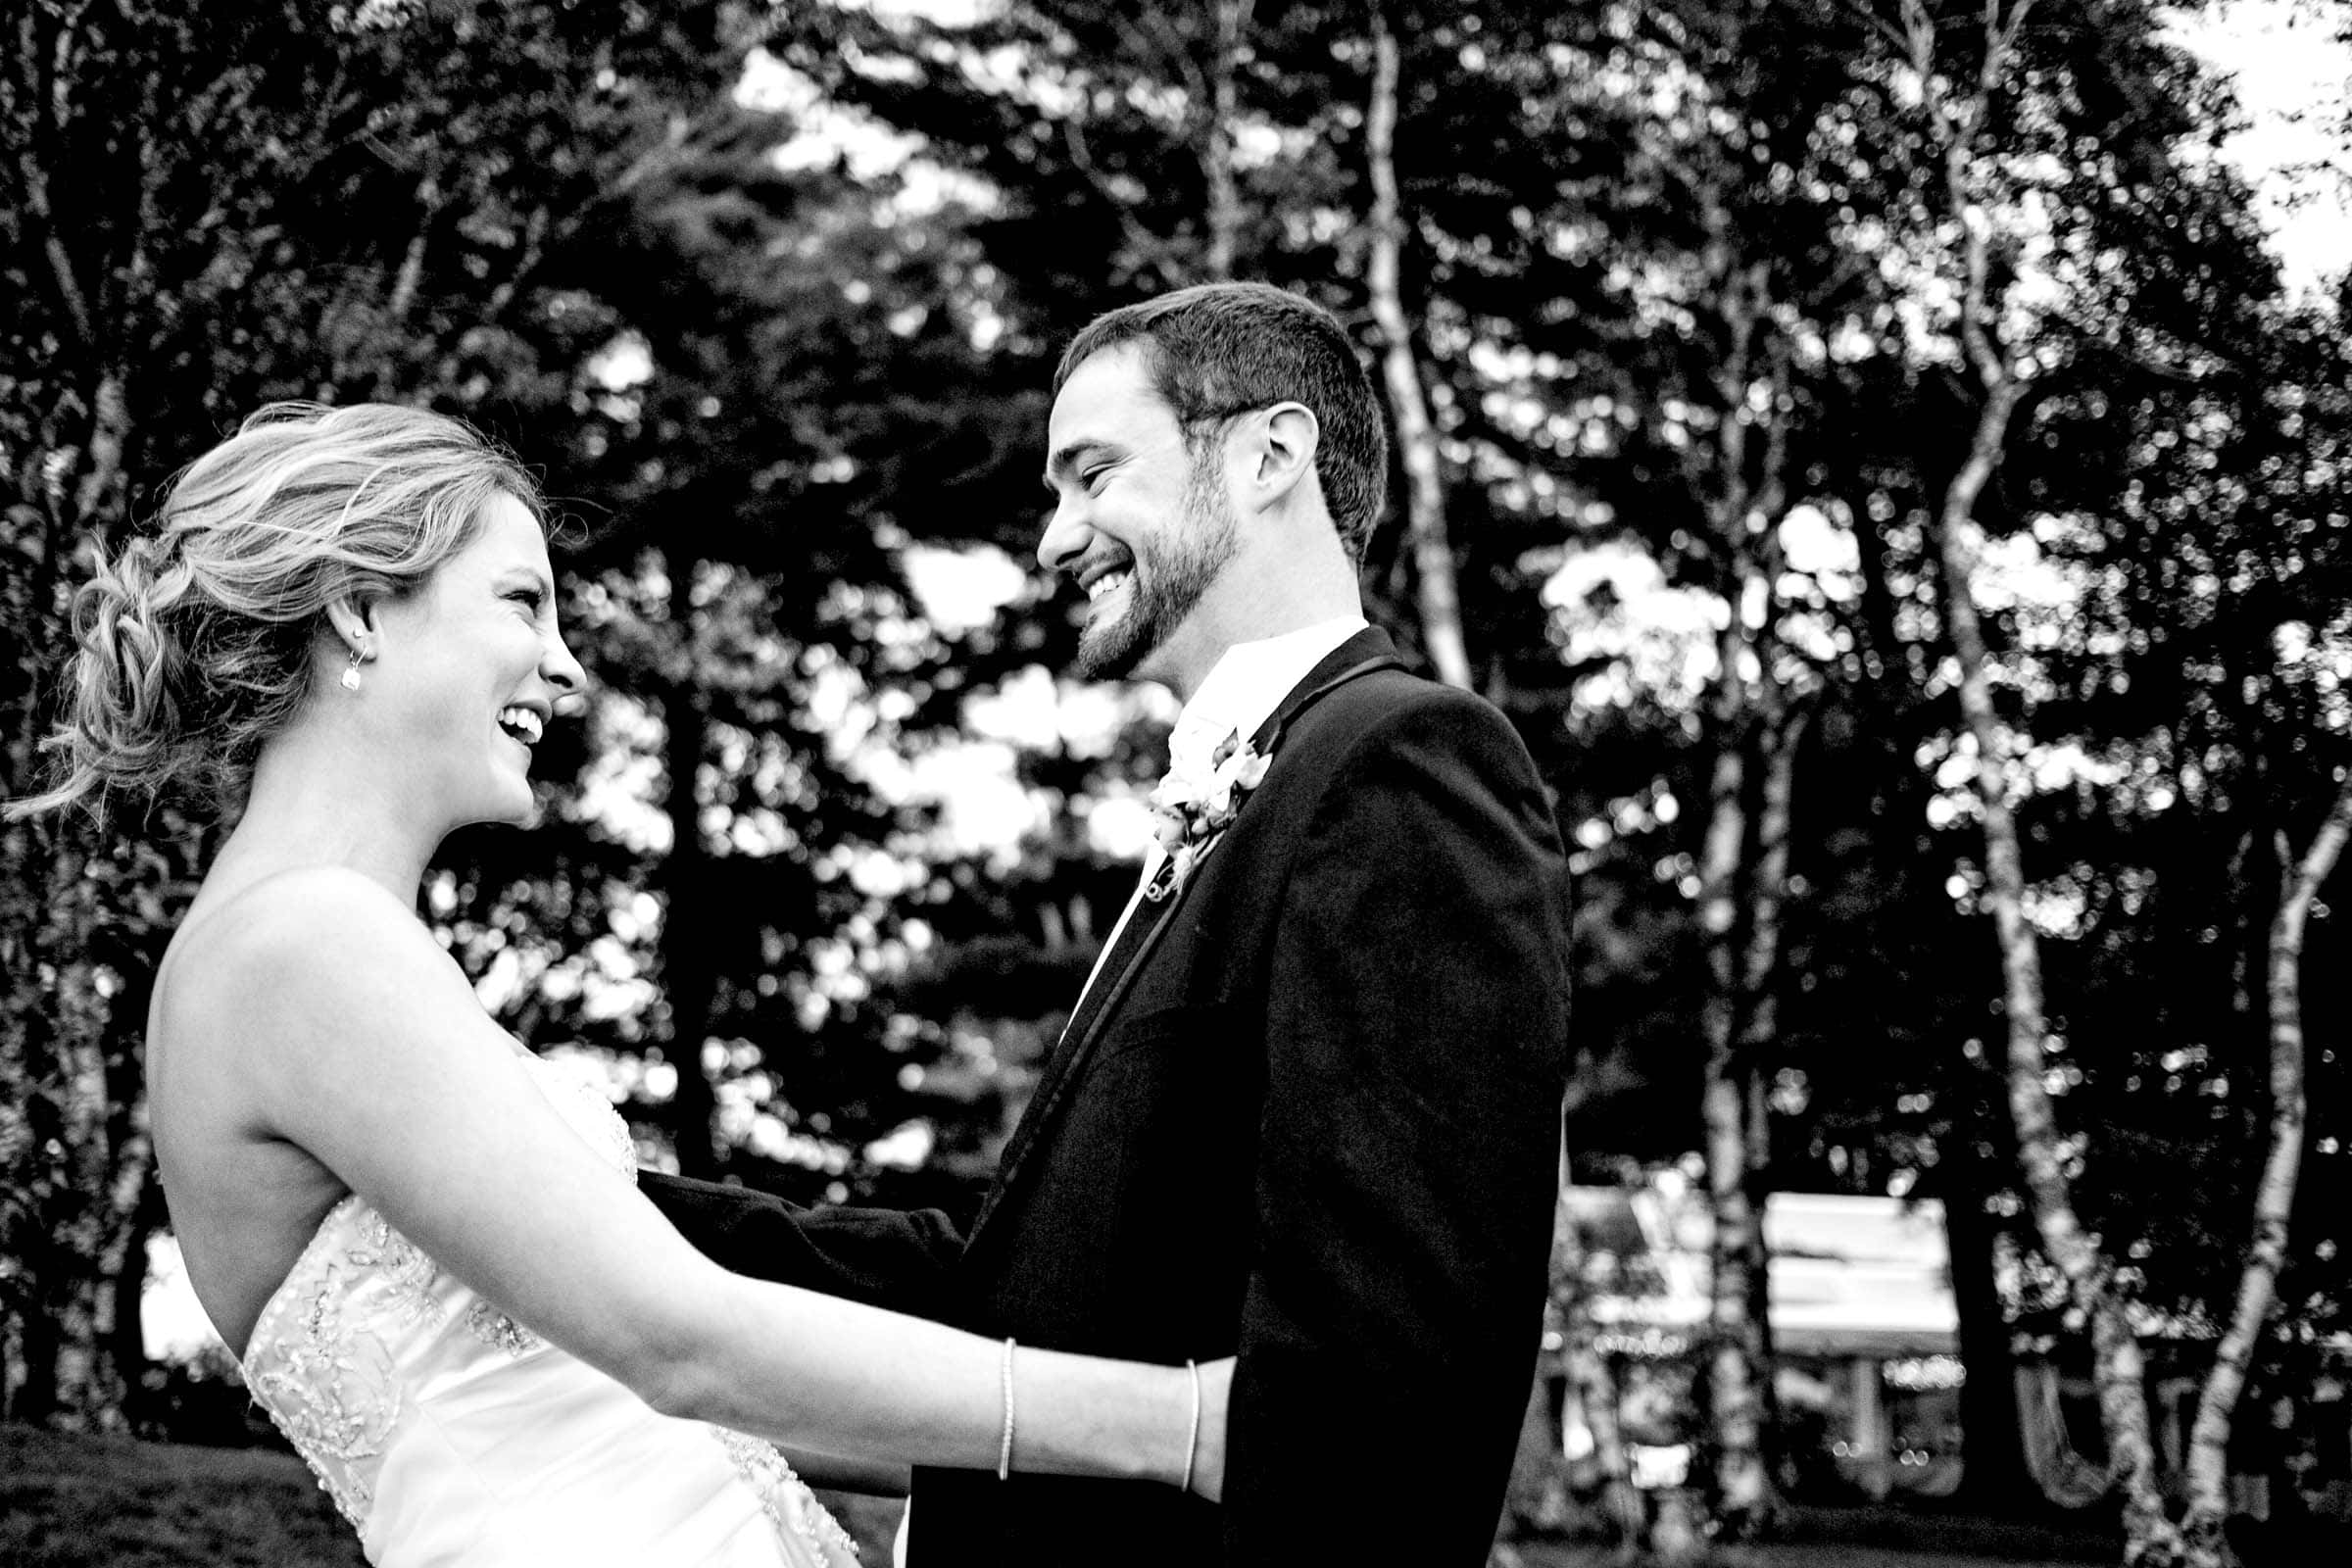 A bride and groom laughing and hugging together during a Trapp Family Lodge wedding in Stowe, Vermont.